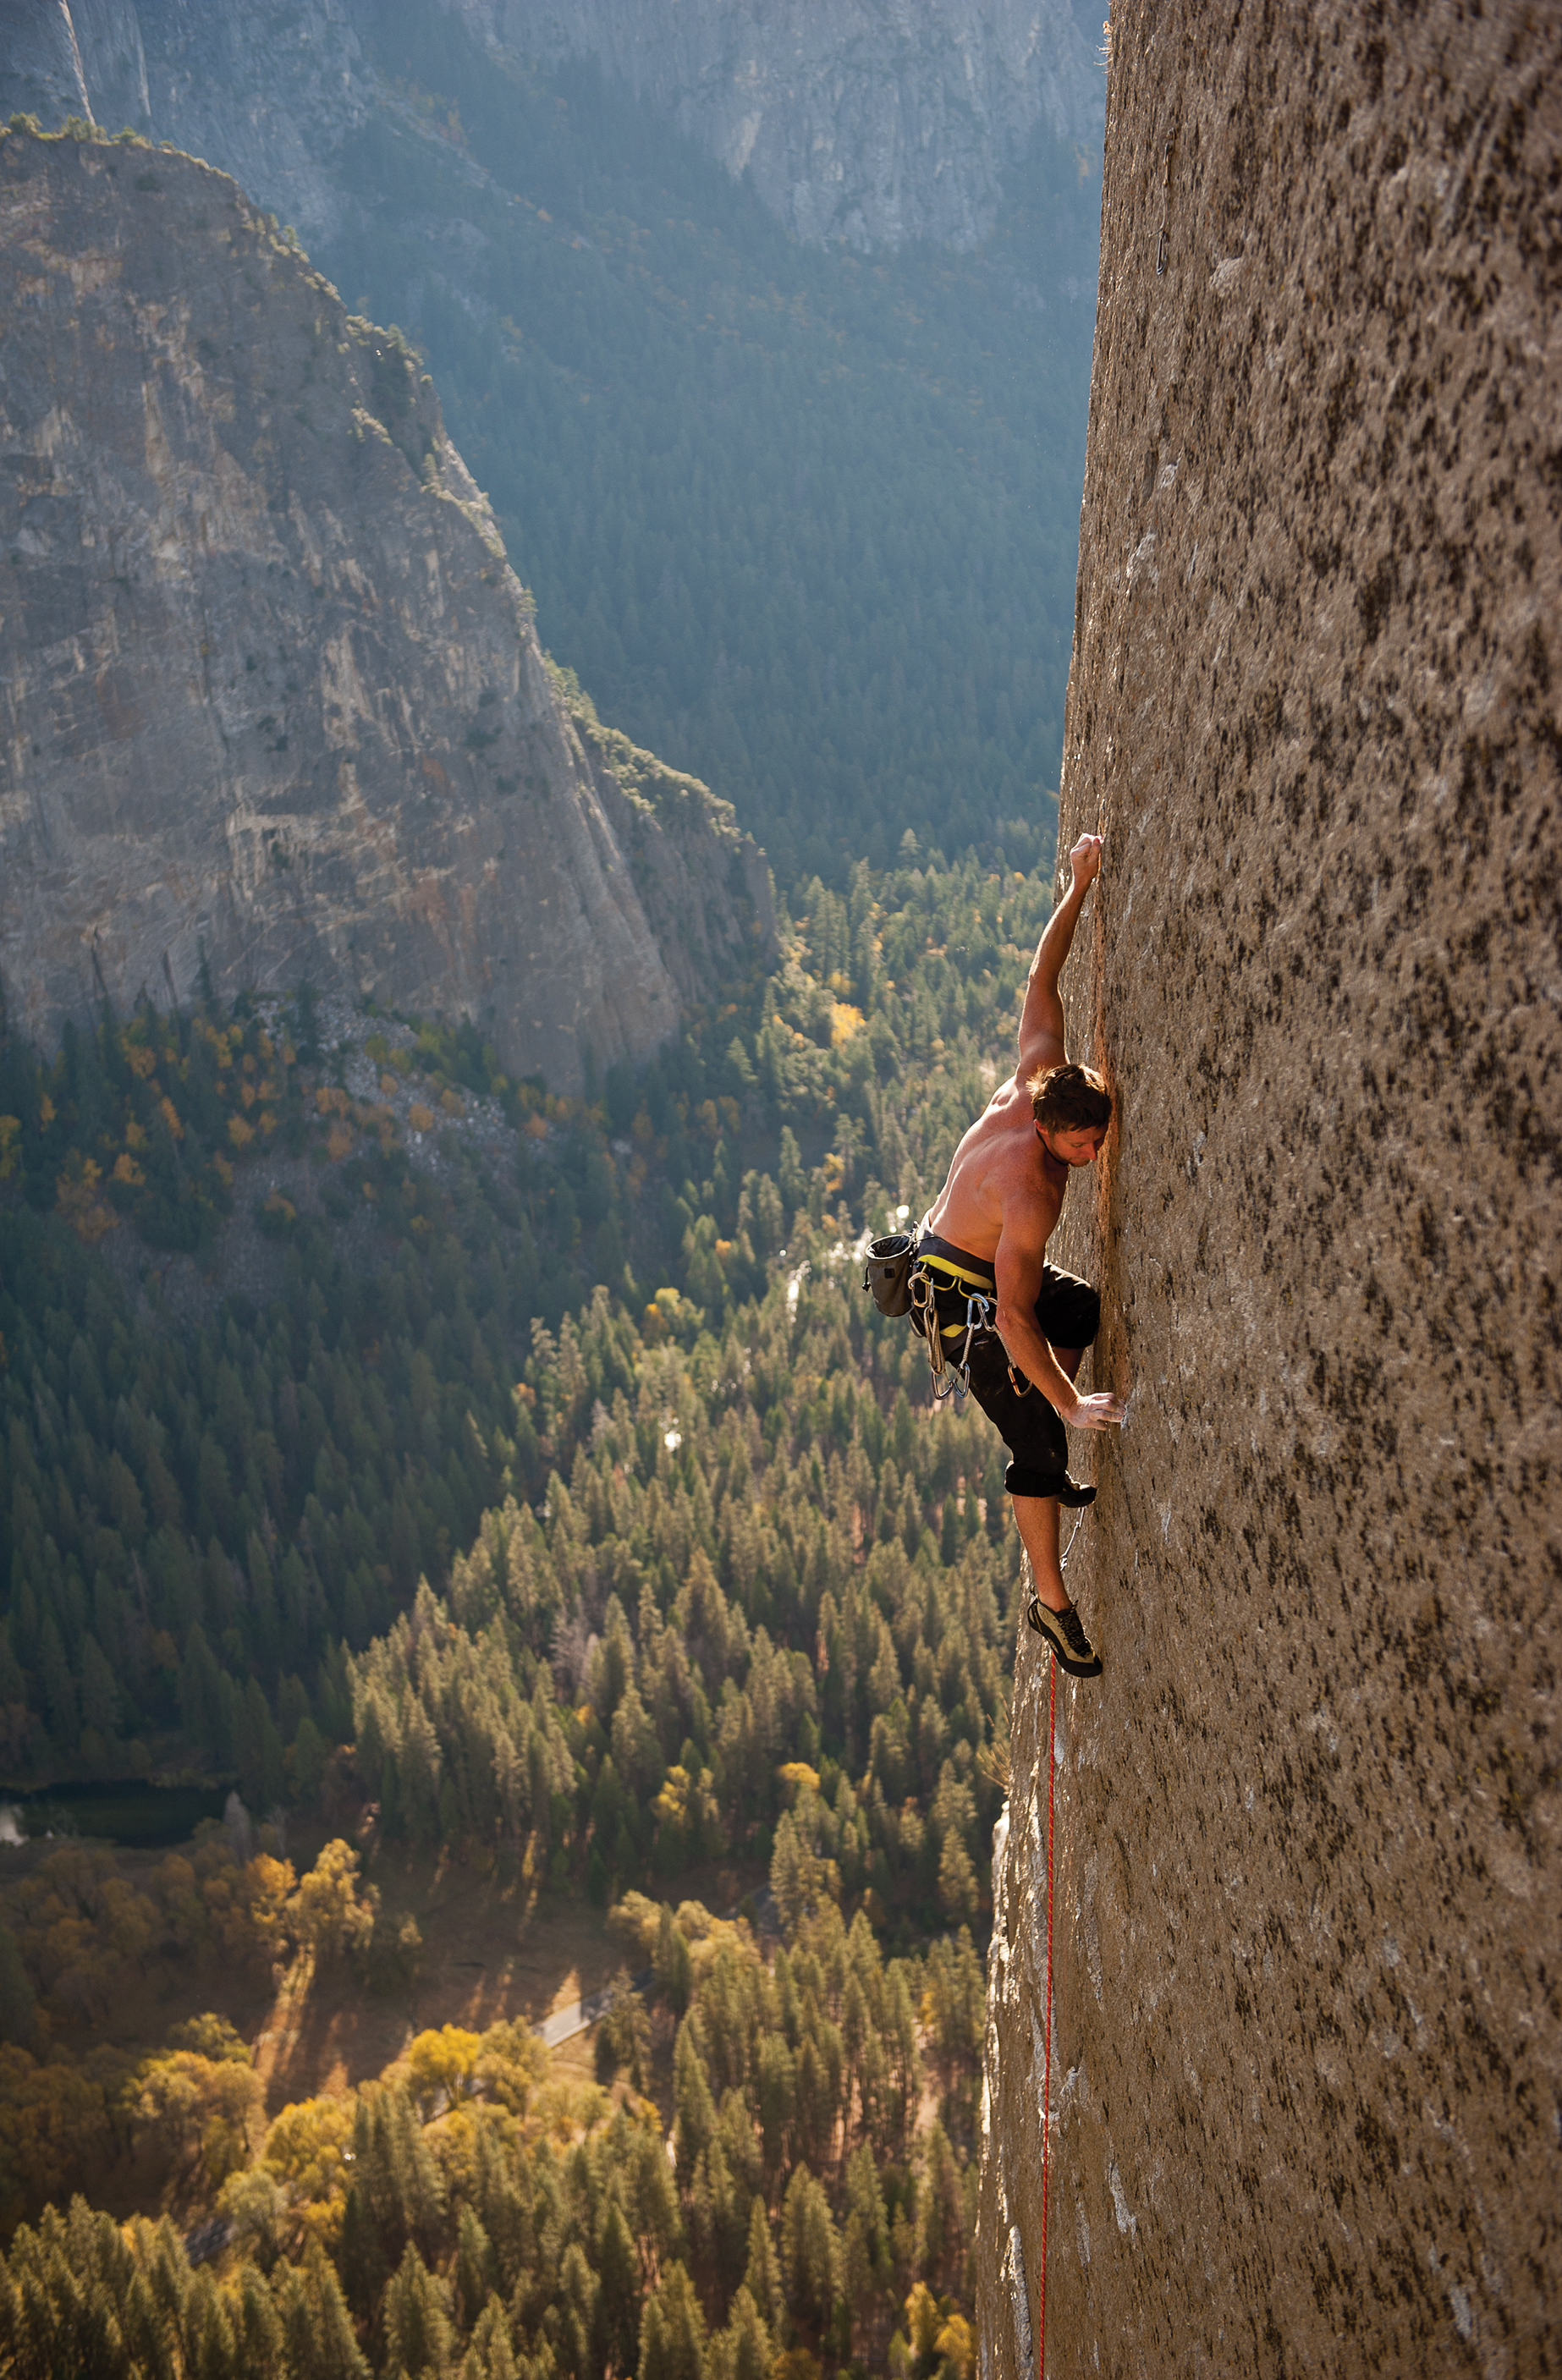 Jimmy Chin (Penguin Randomhouse)